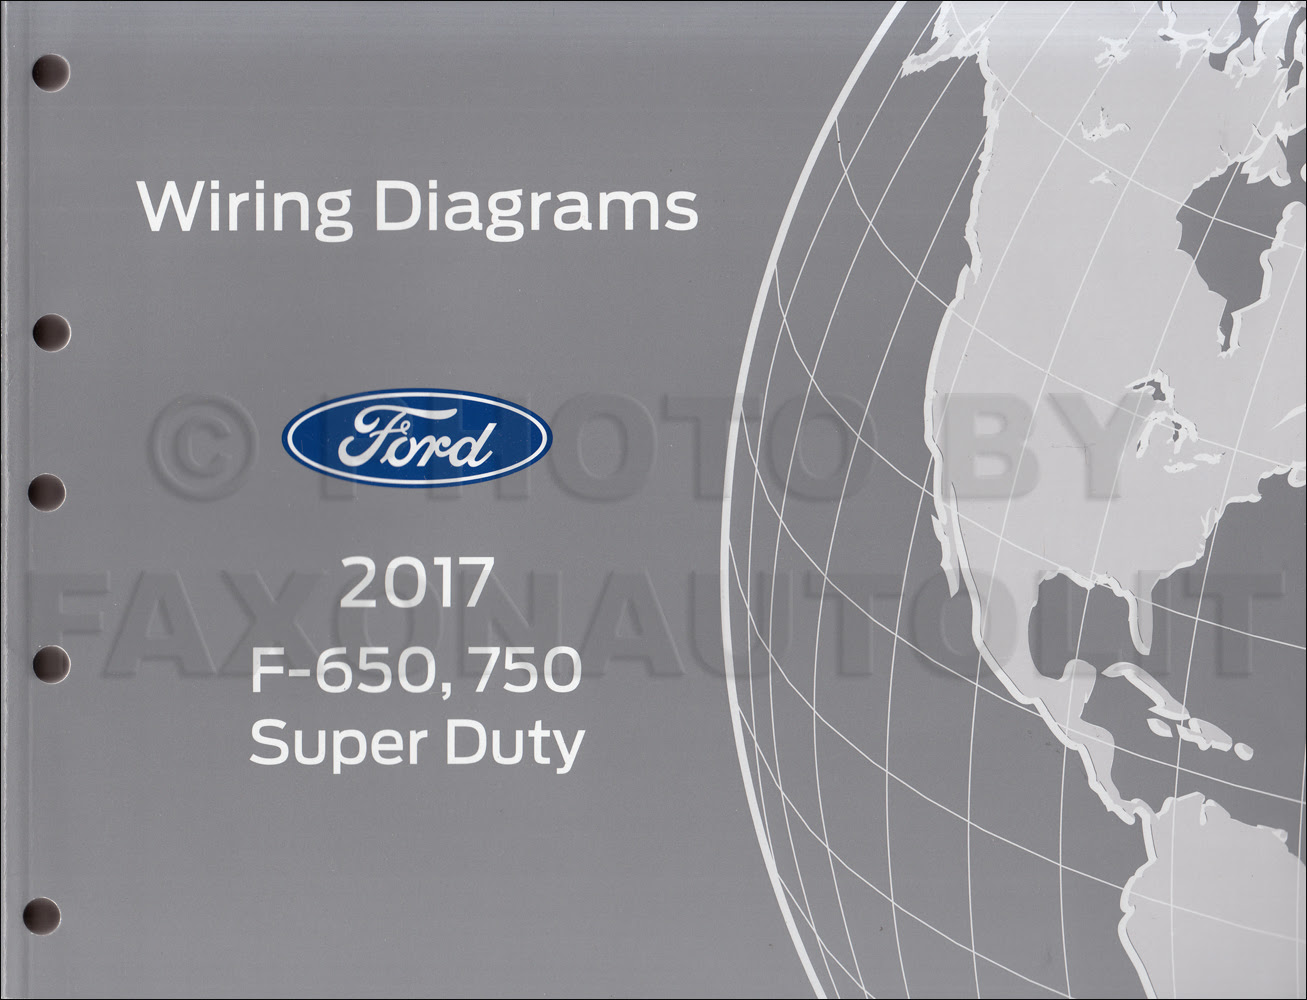 30 2017 Super Duty Wiring Diagram